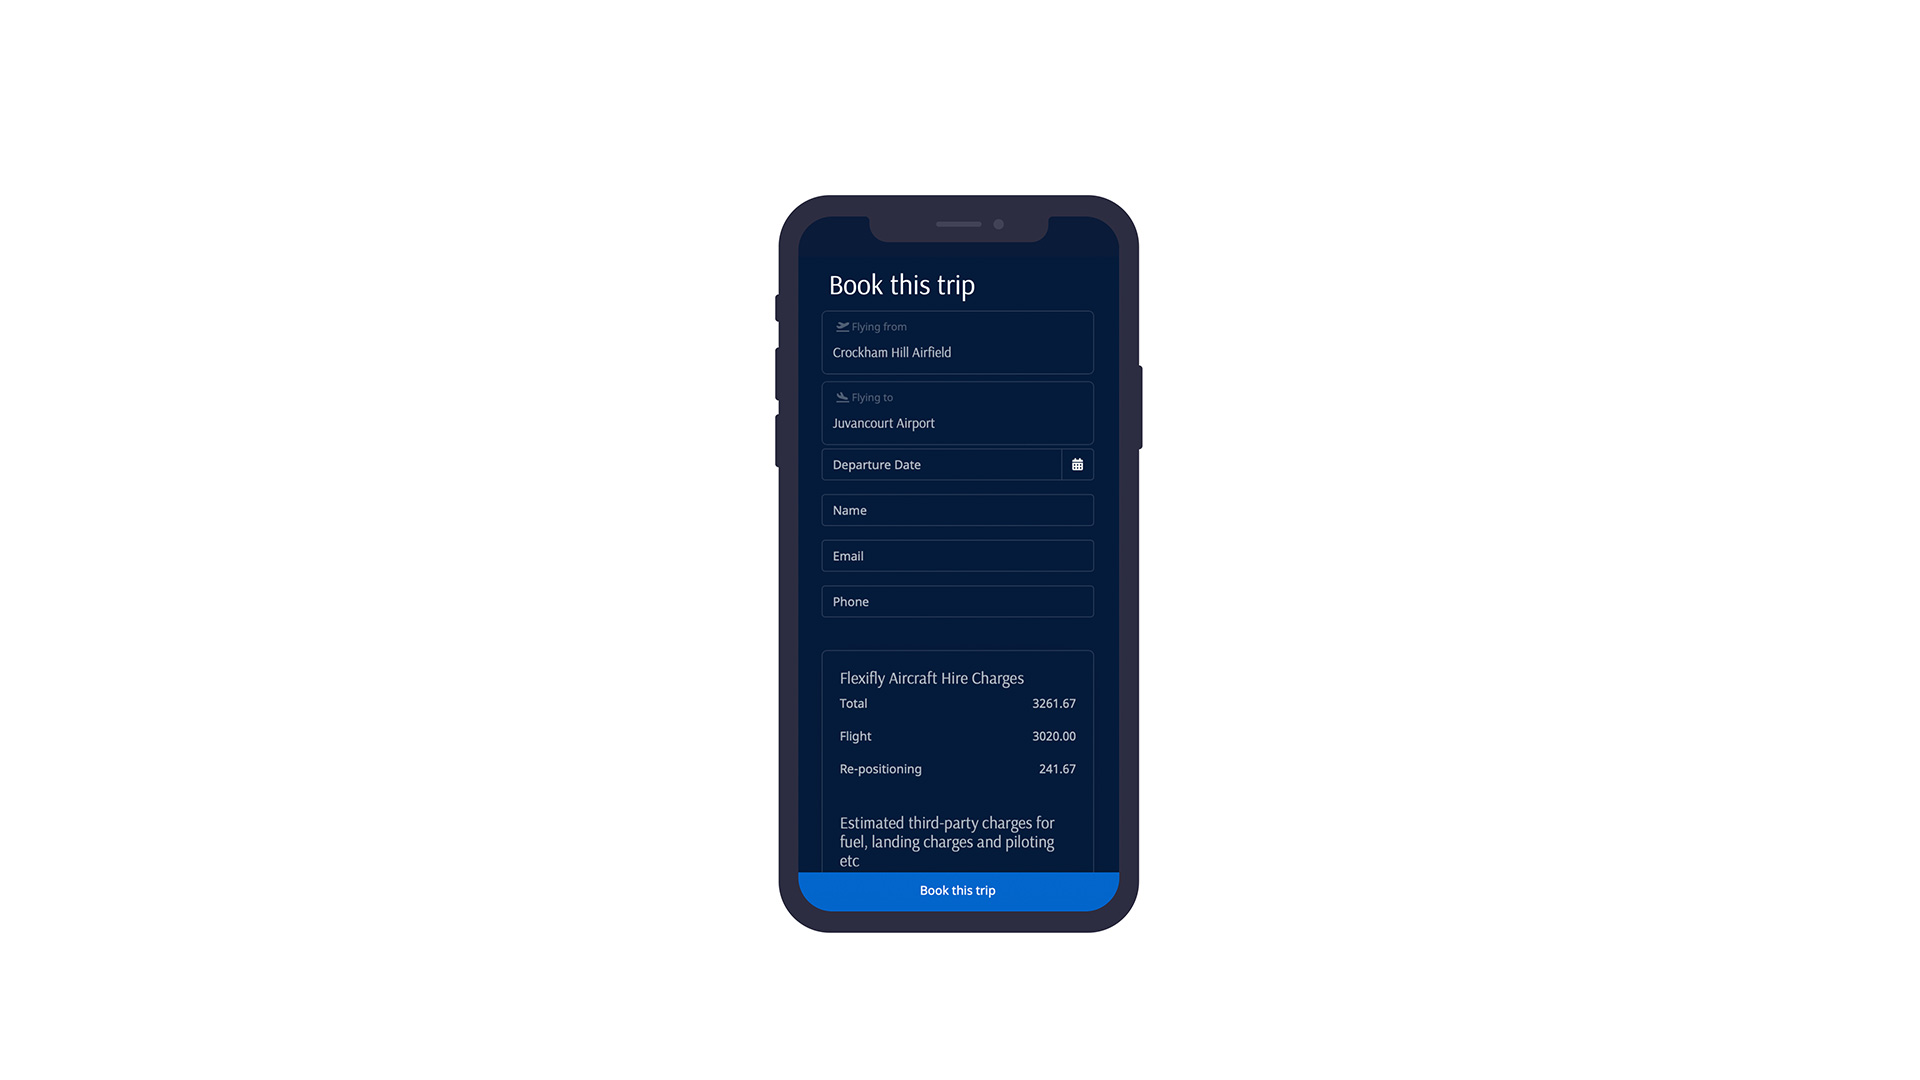 Mobile flight booking system